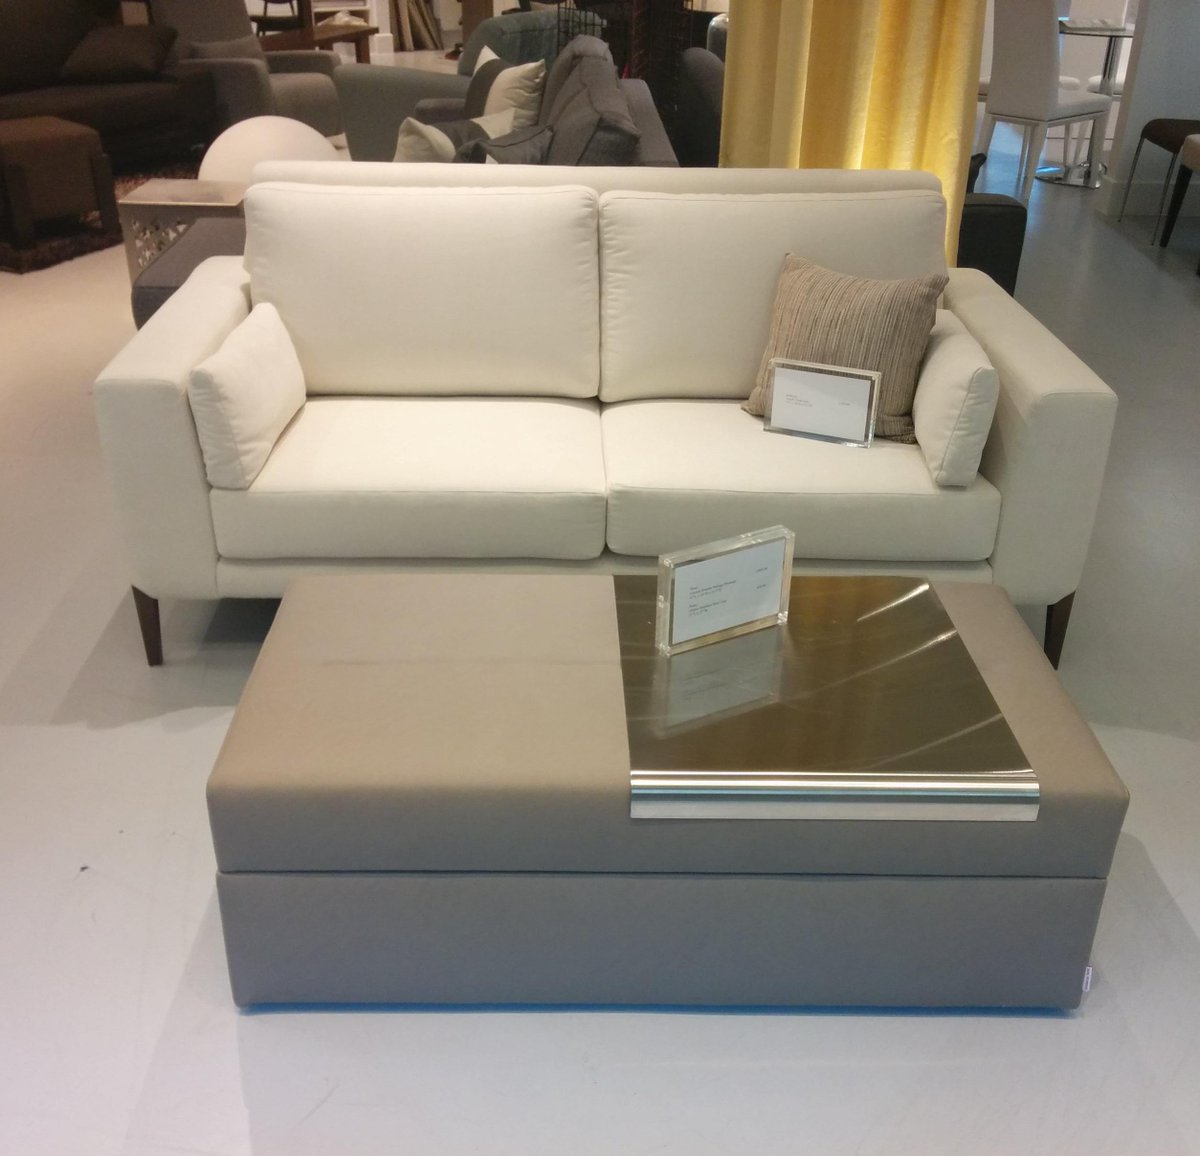 Groovy Statement On Twitter Italdivani Amalfi Sofa Weve Paired Uwap Interior Chair Design Uwaporg